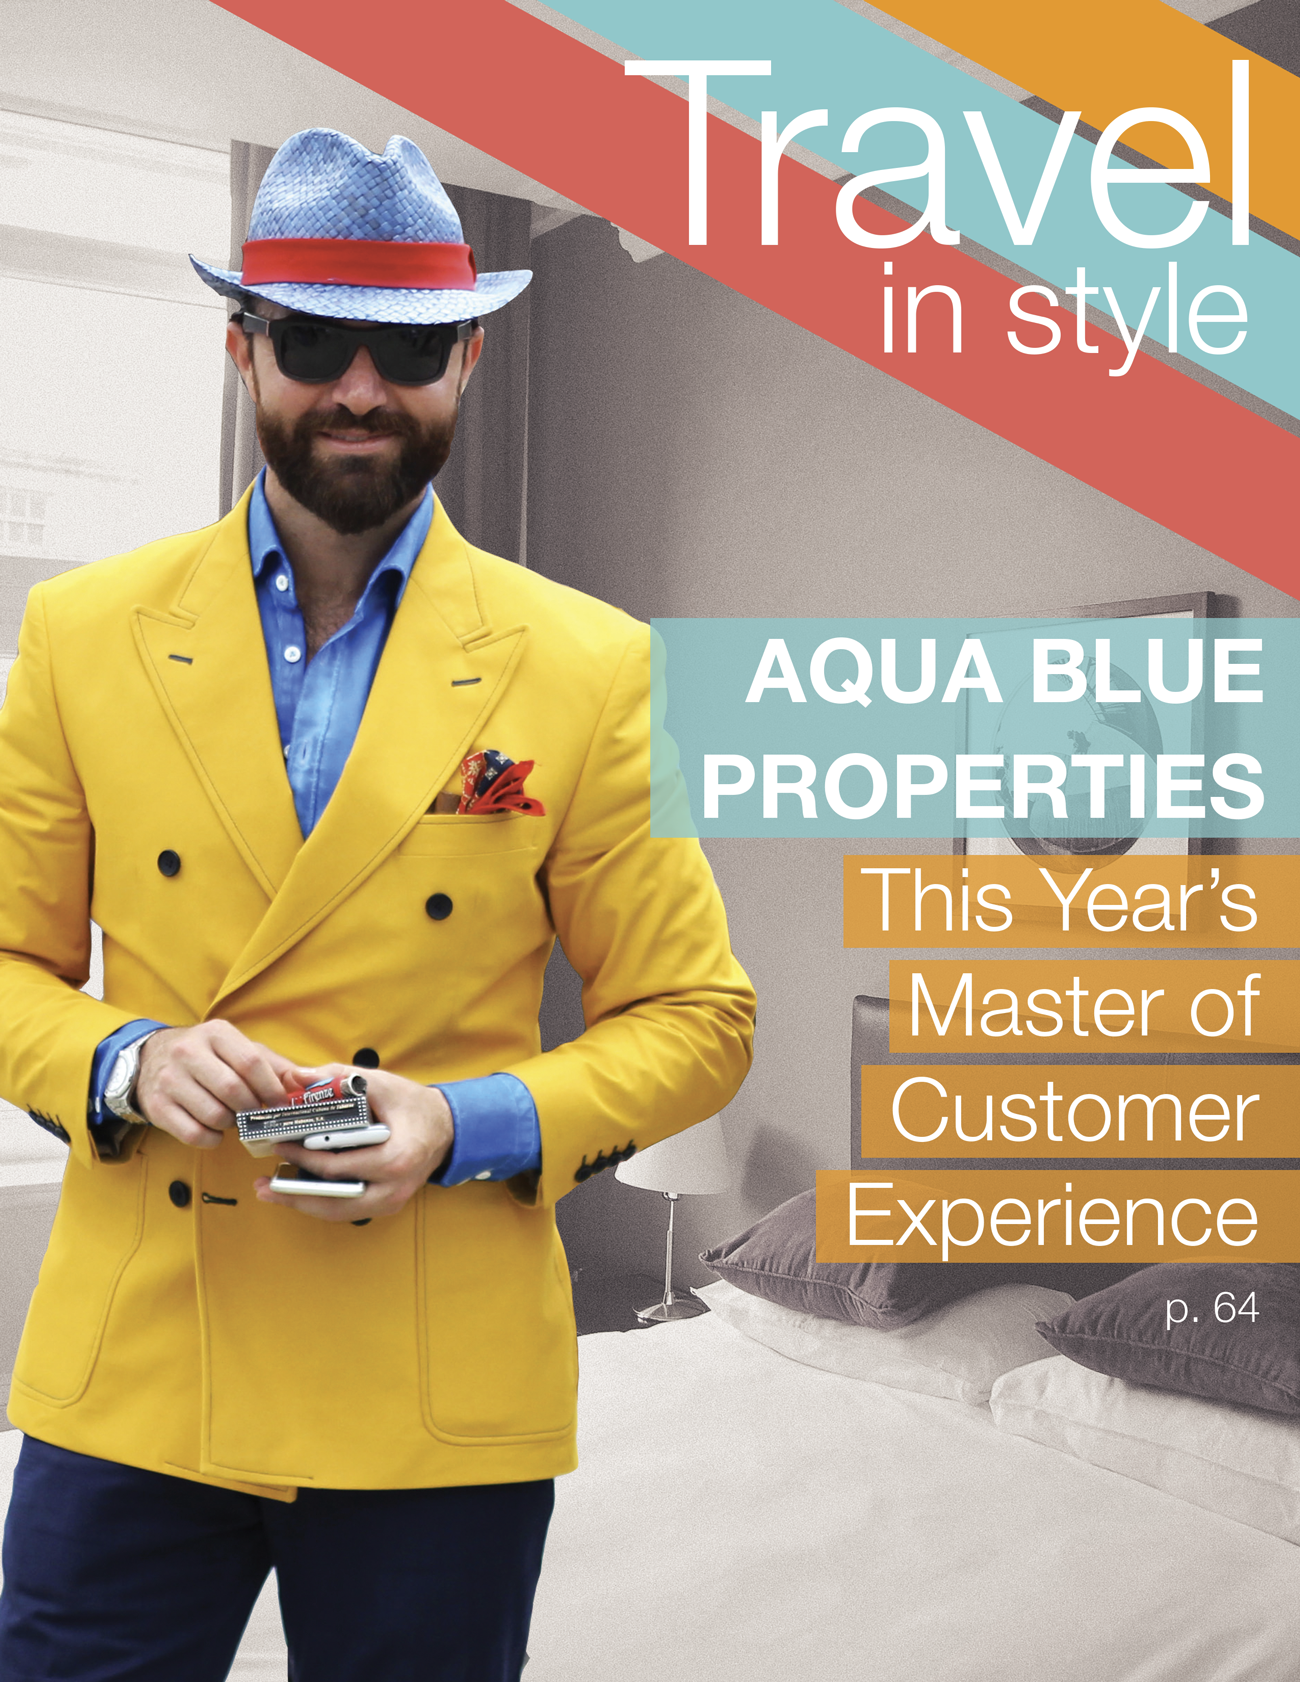 Magazine cover: Travel in style. Aqua Blue Properties: This Year's Master of Customer Experience